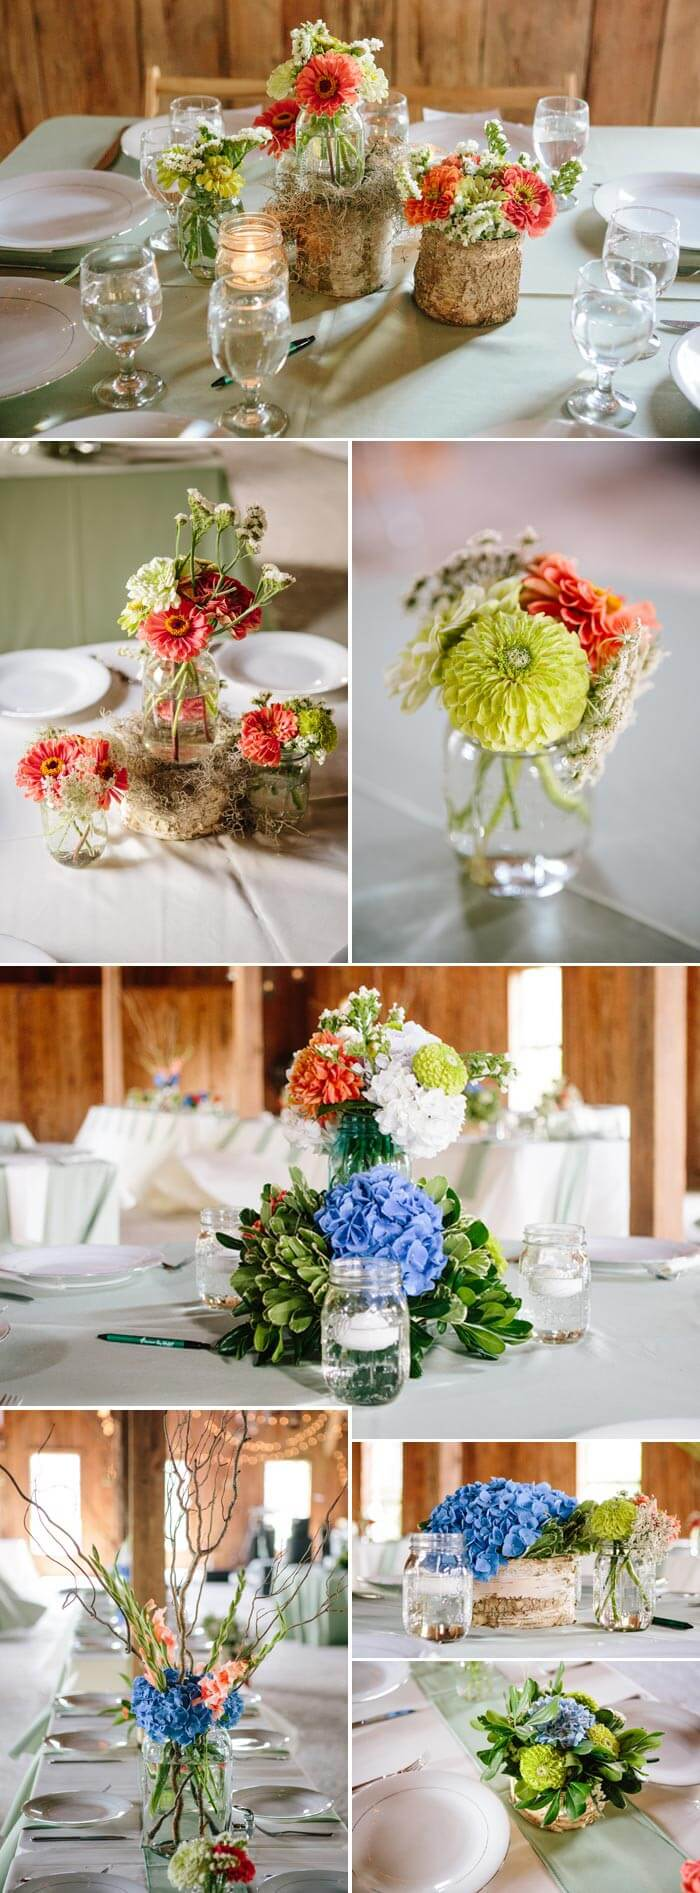 1632531484 228 The best tips ideas inspiration for country style - The best tips, ideas & inspiration for country style